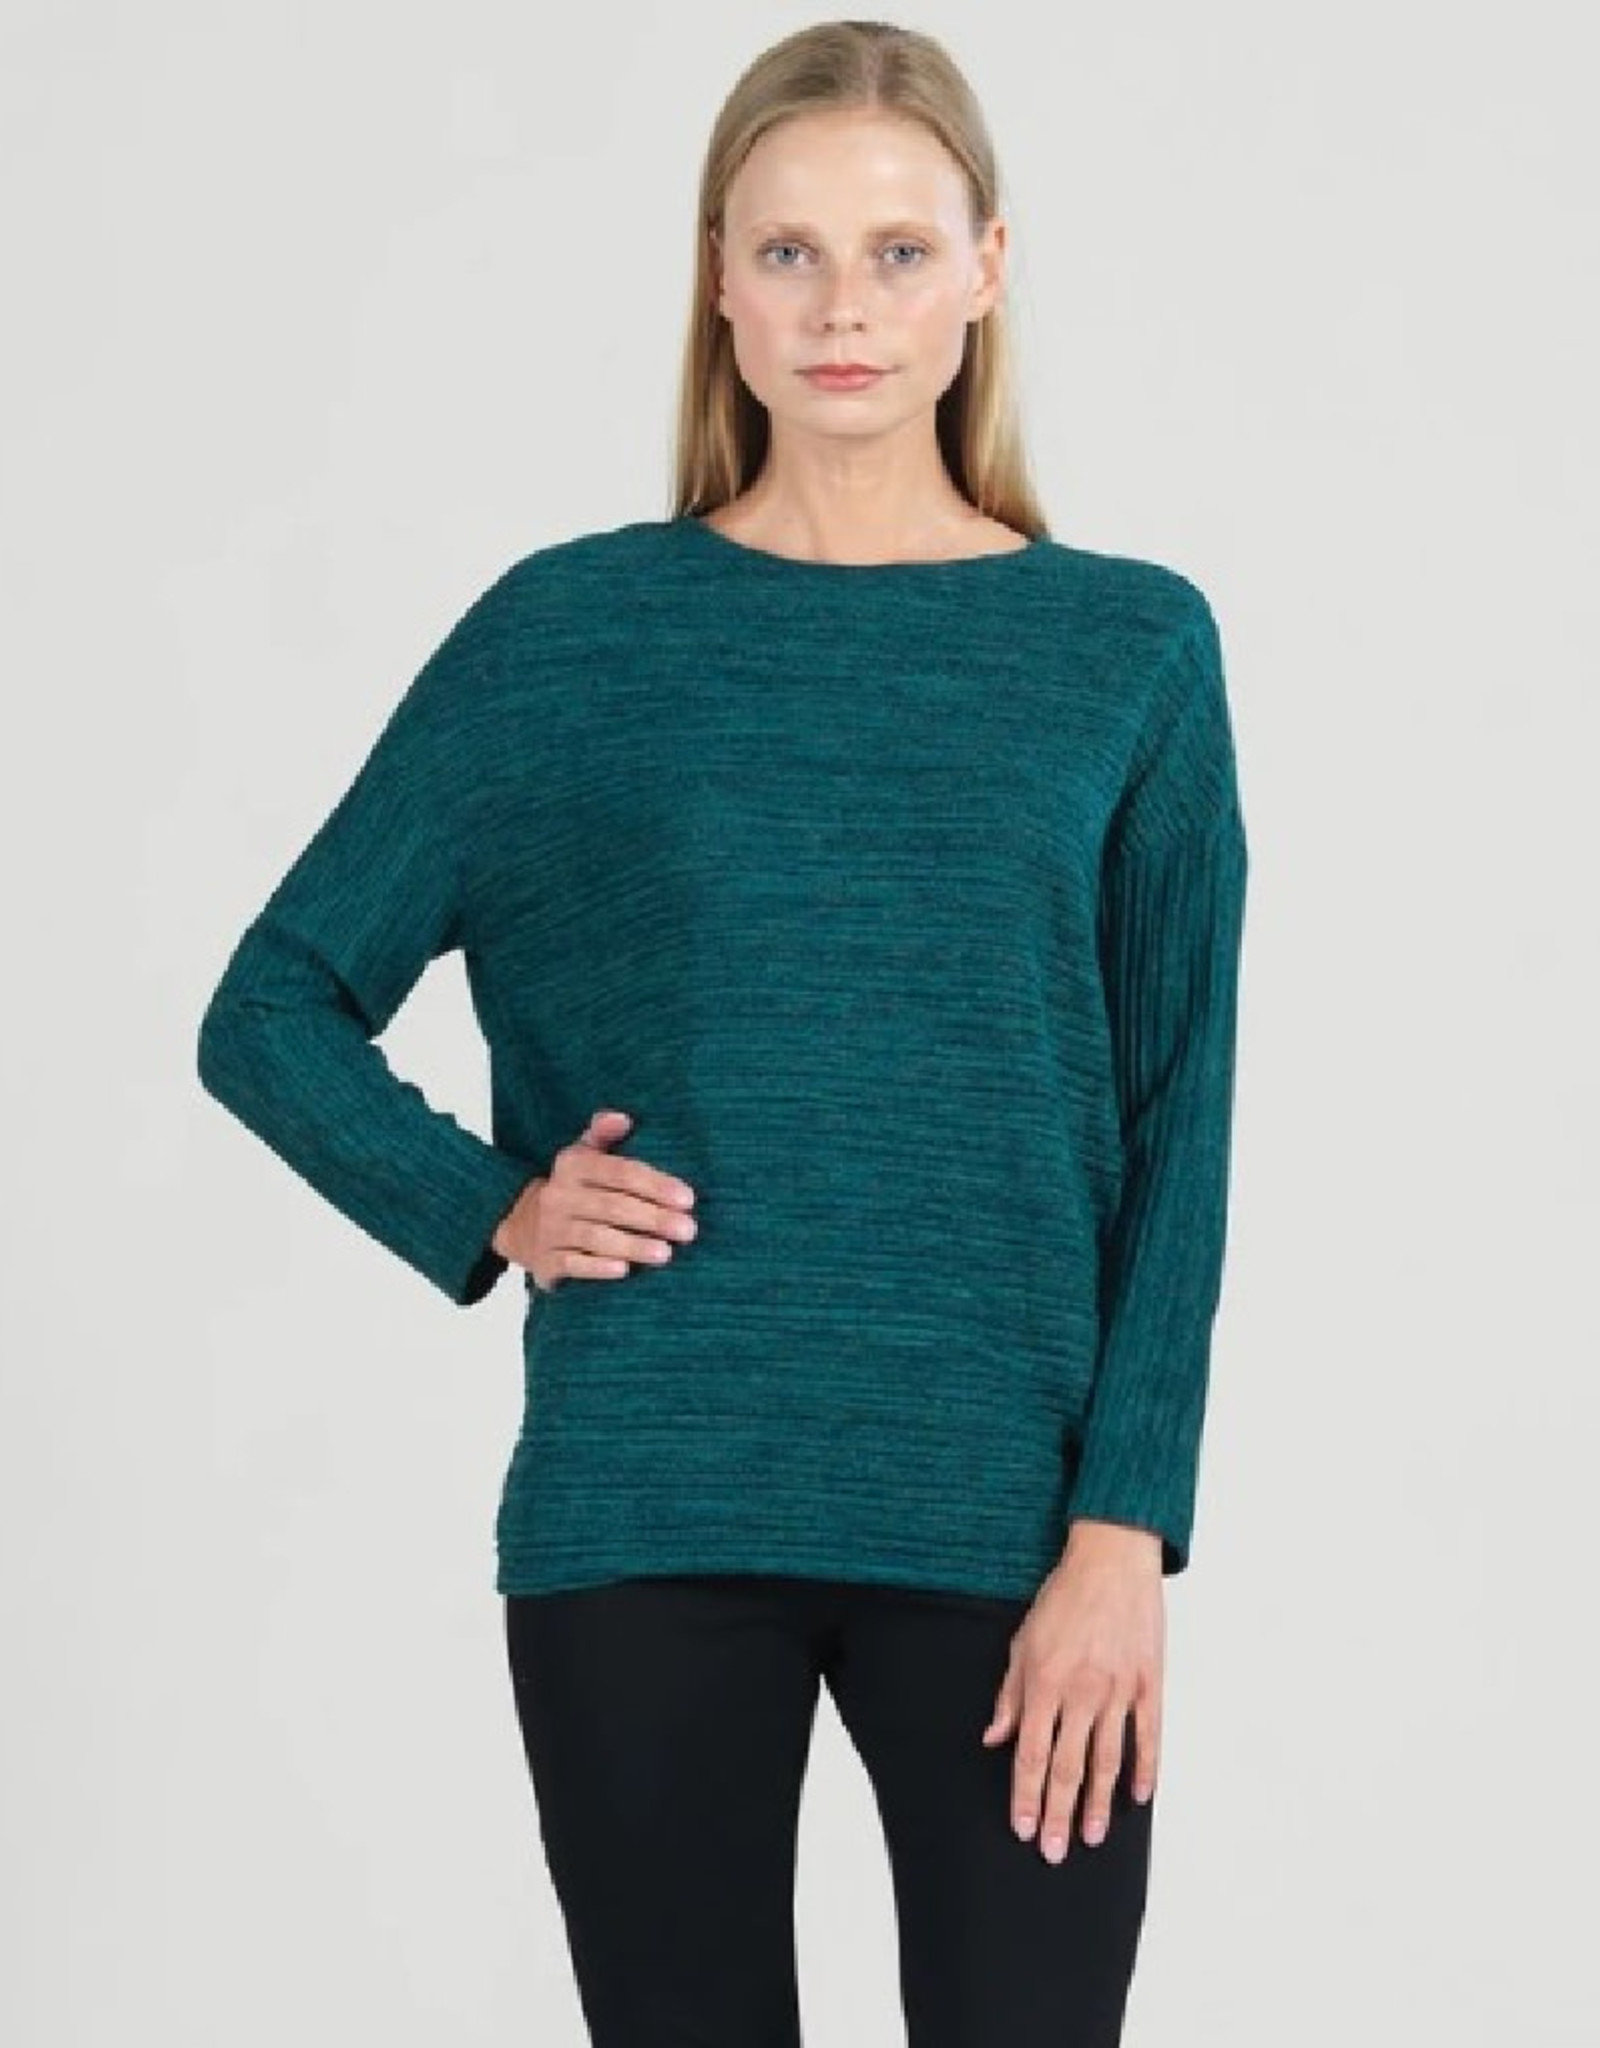 Ribbed Scoop Neck Sweater